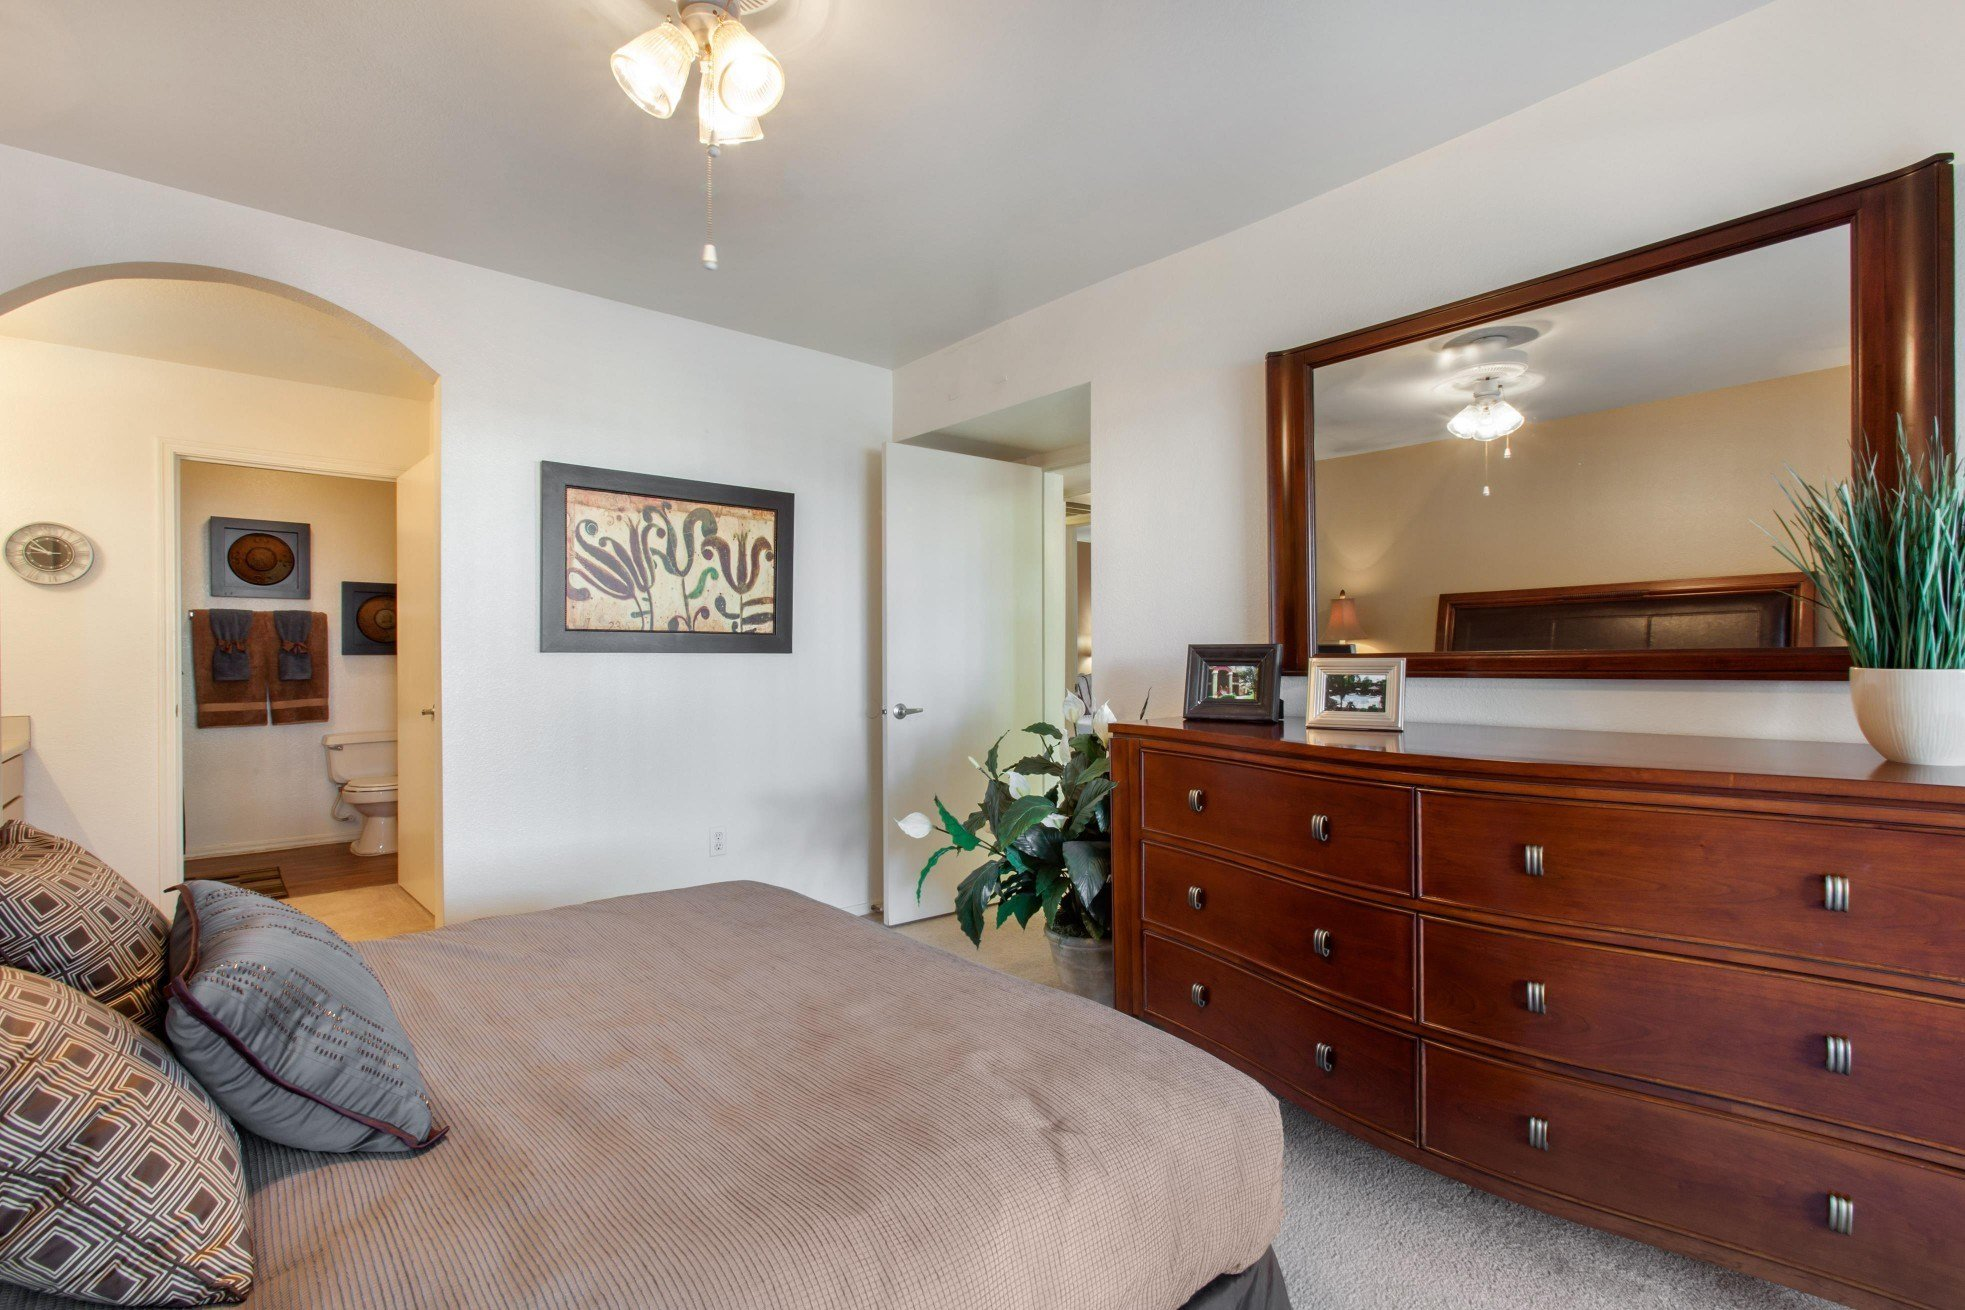 The Village at Lindsay Park|Bedroom